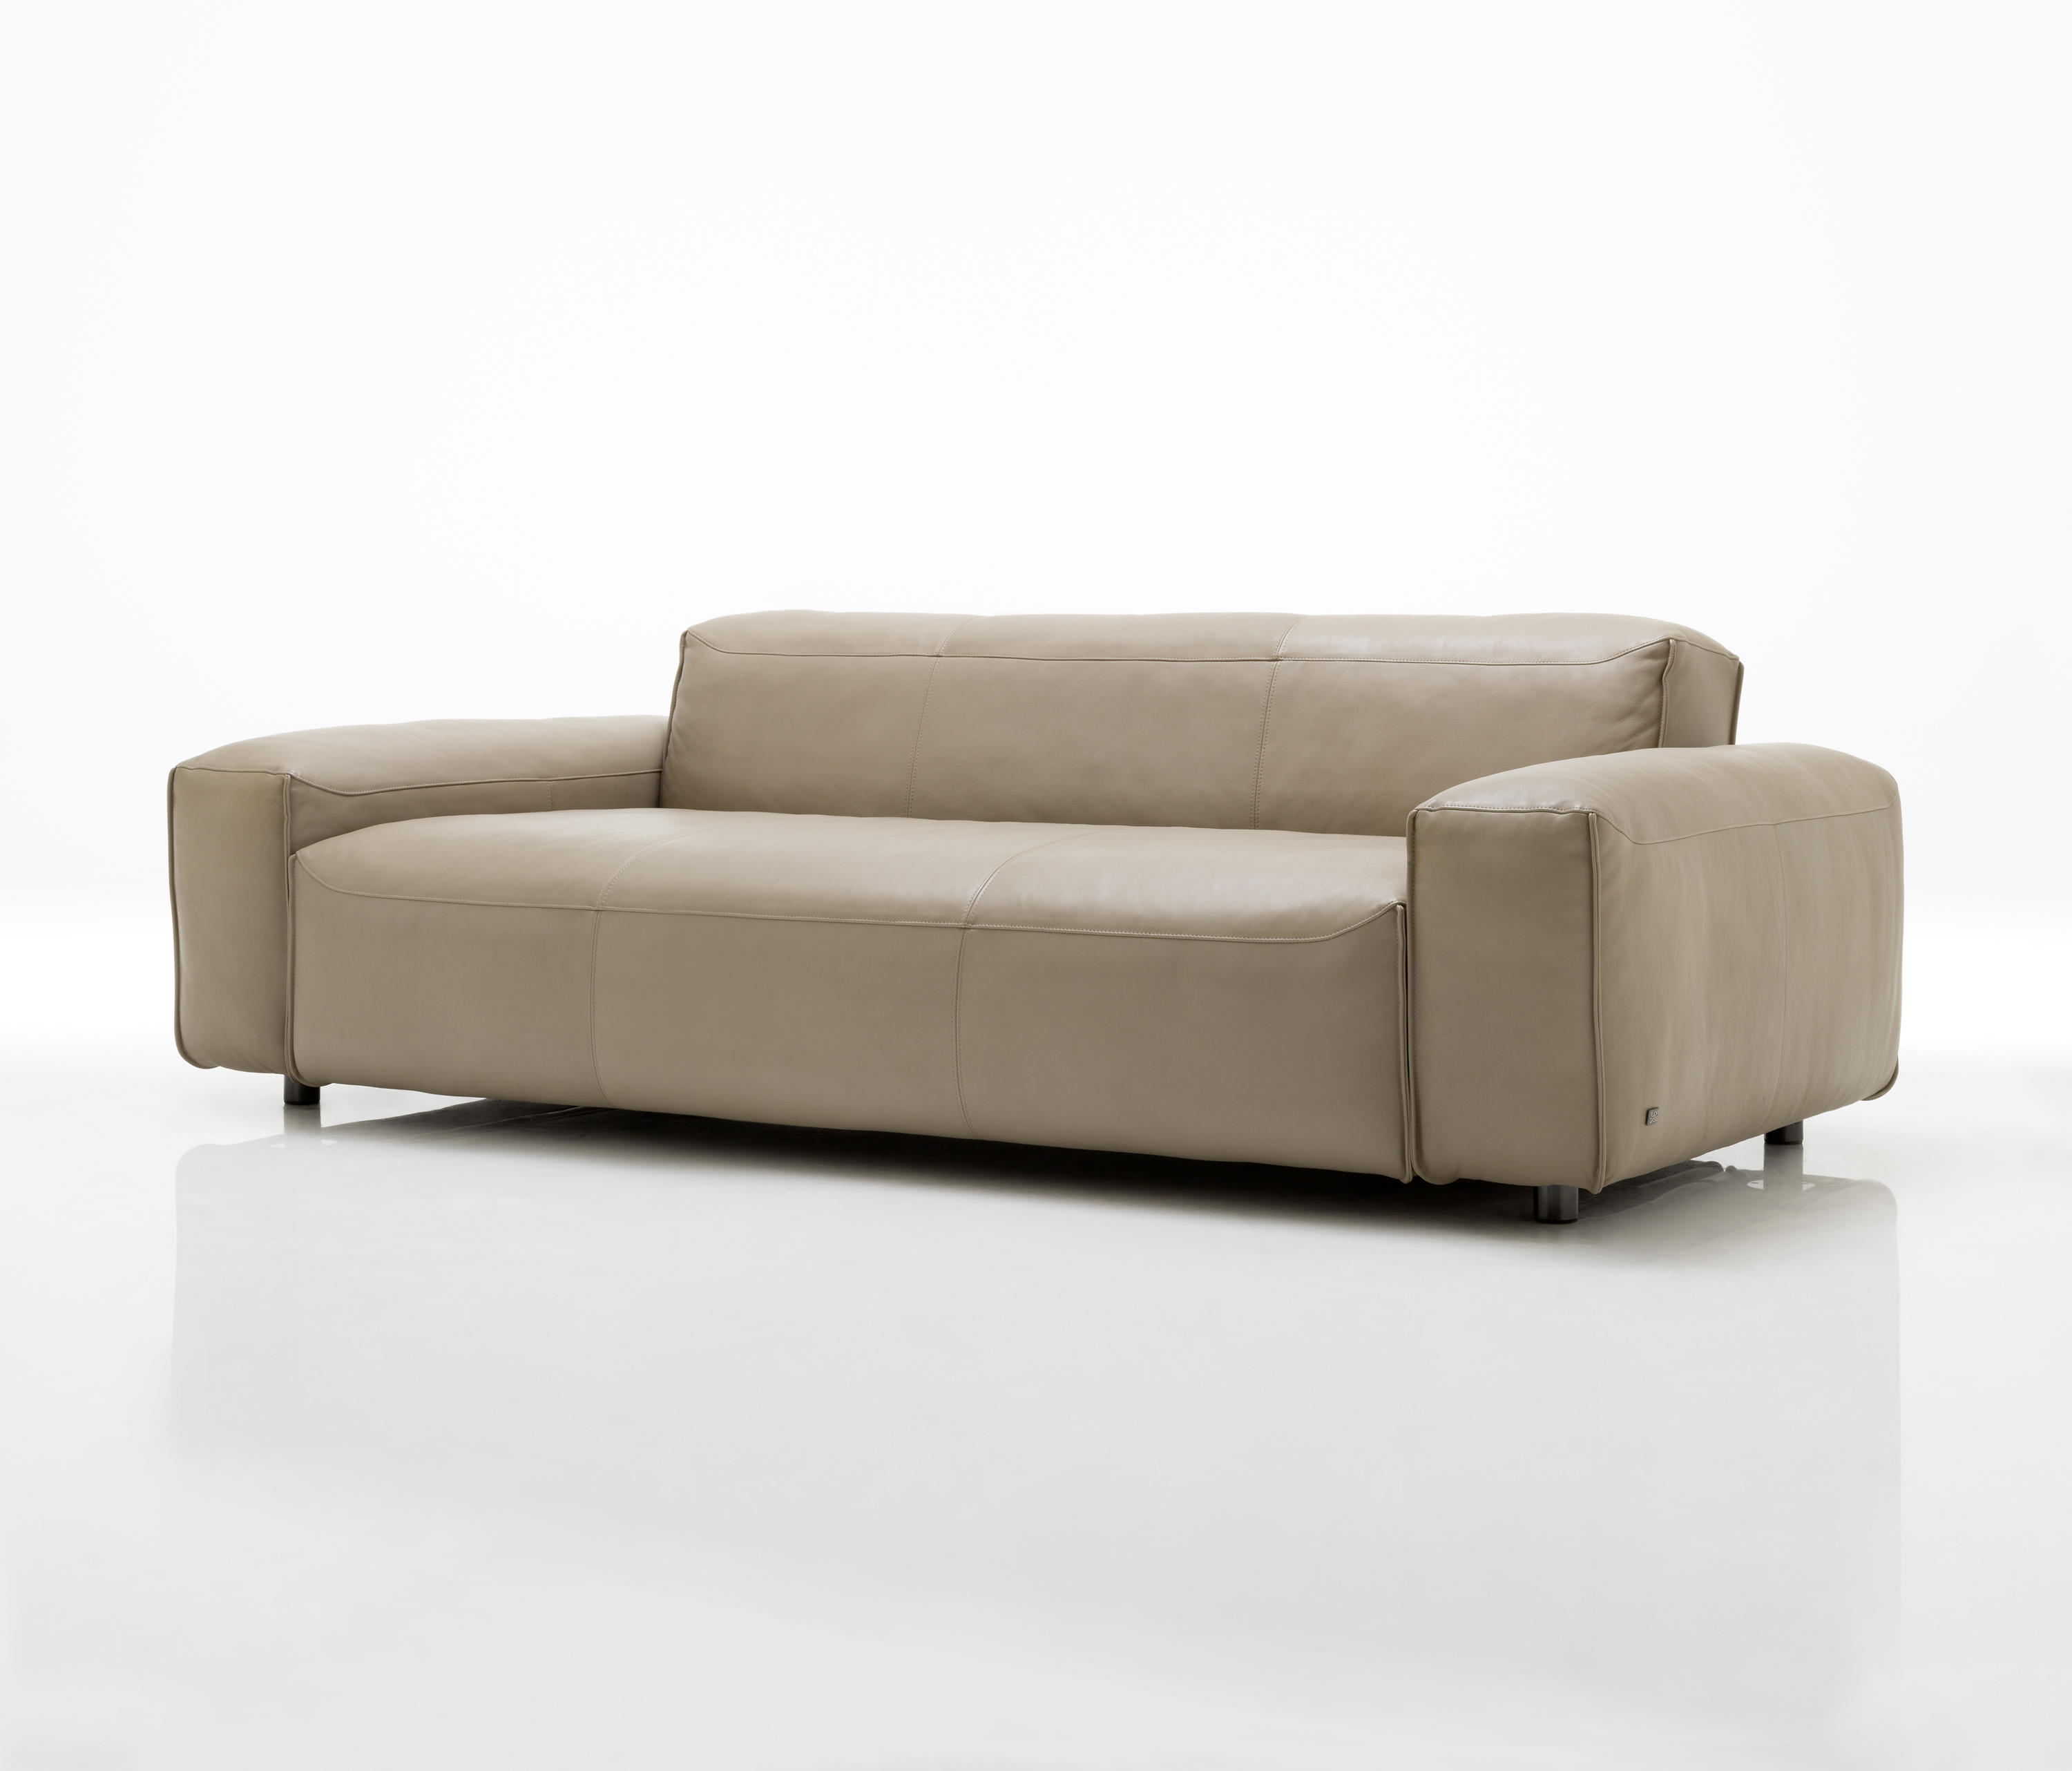 Couch rolf benz couch rolf benz with couch rolf benz for Couch benz